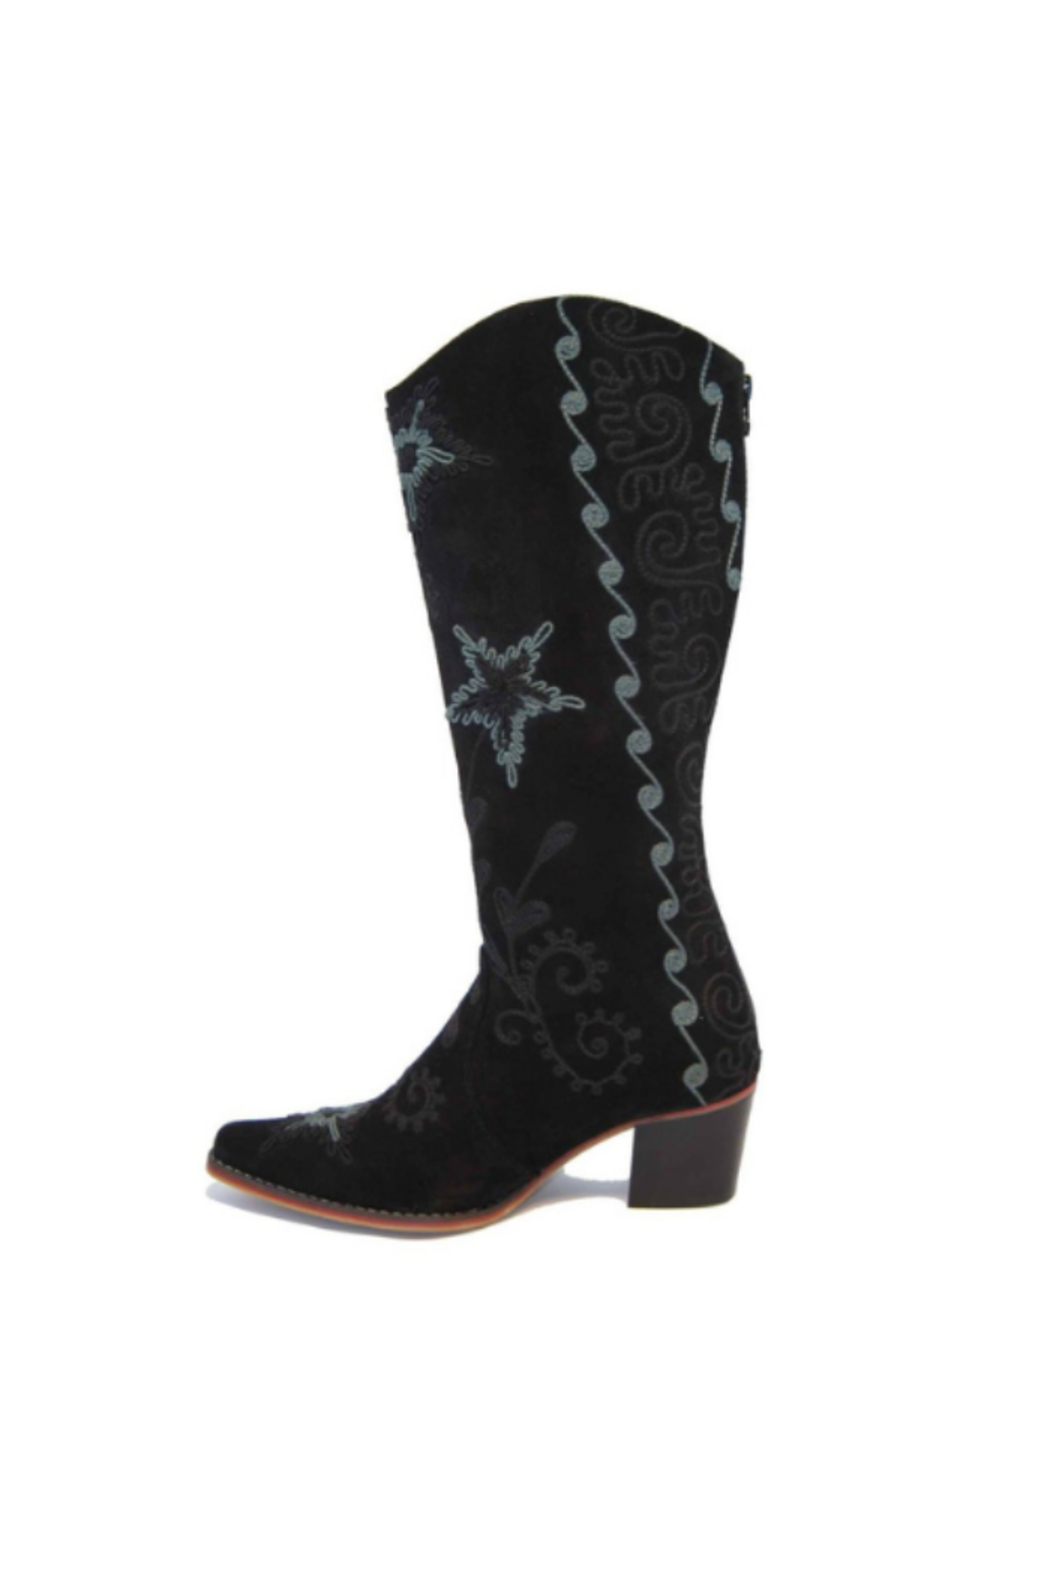 Artemis Collections Inc Cheyenne Tall Embroidered Brushed Leather 2 - Side Cropped Image